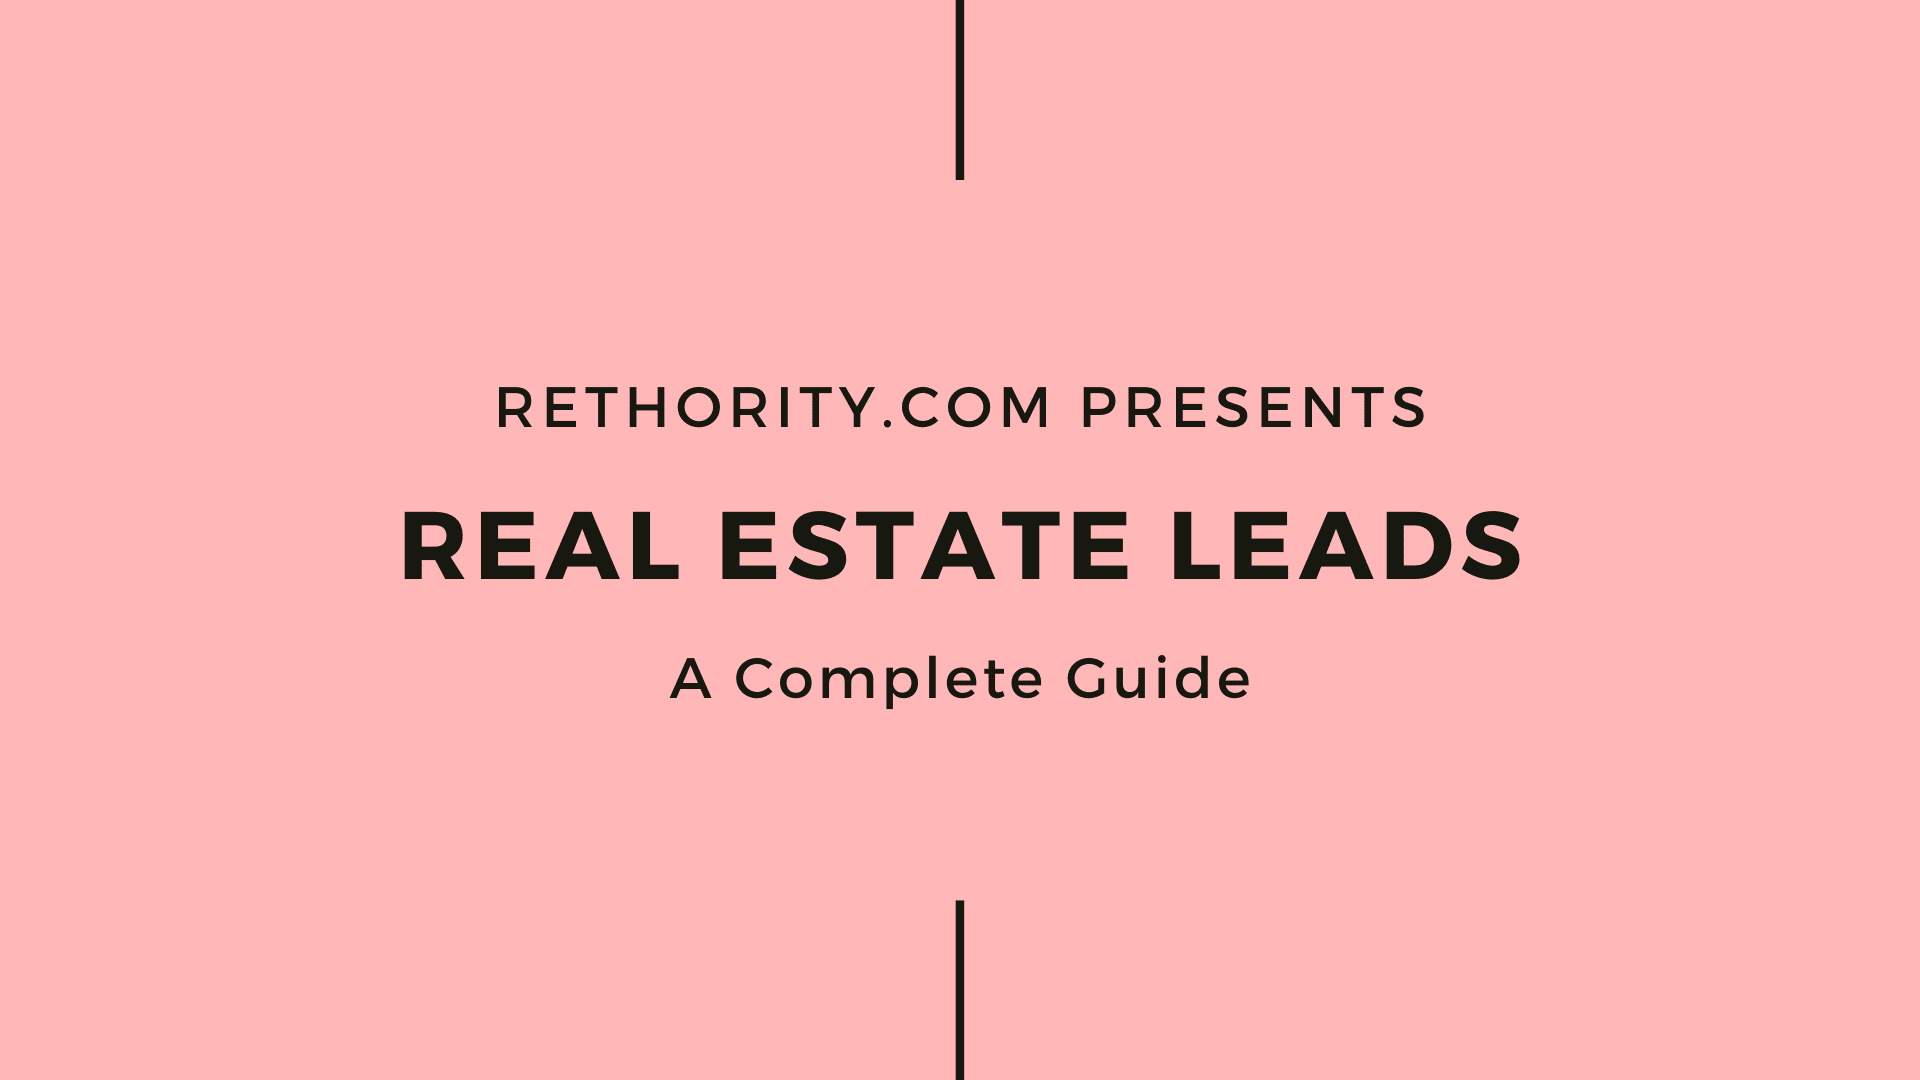 Real Estate Leads graphic against salmon background